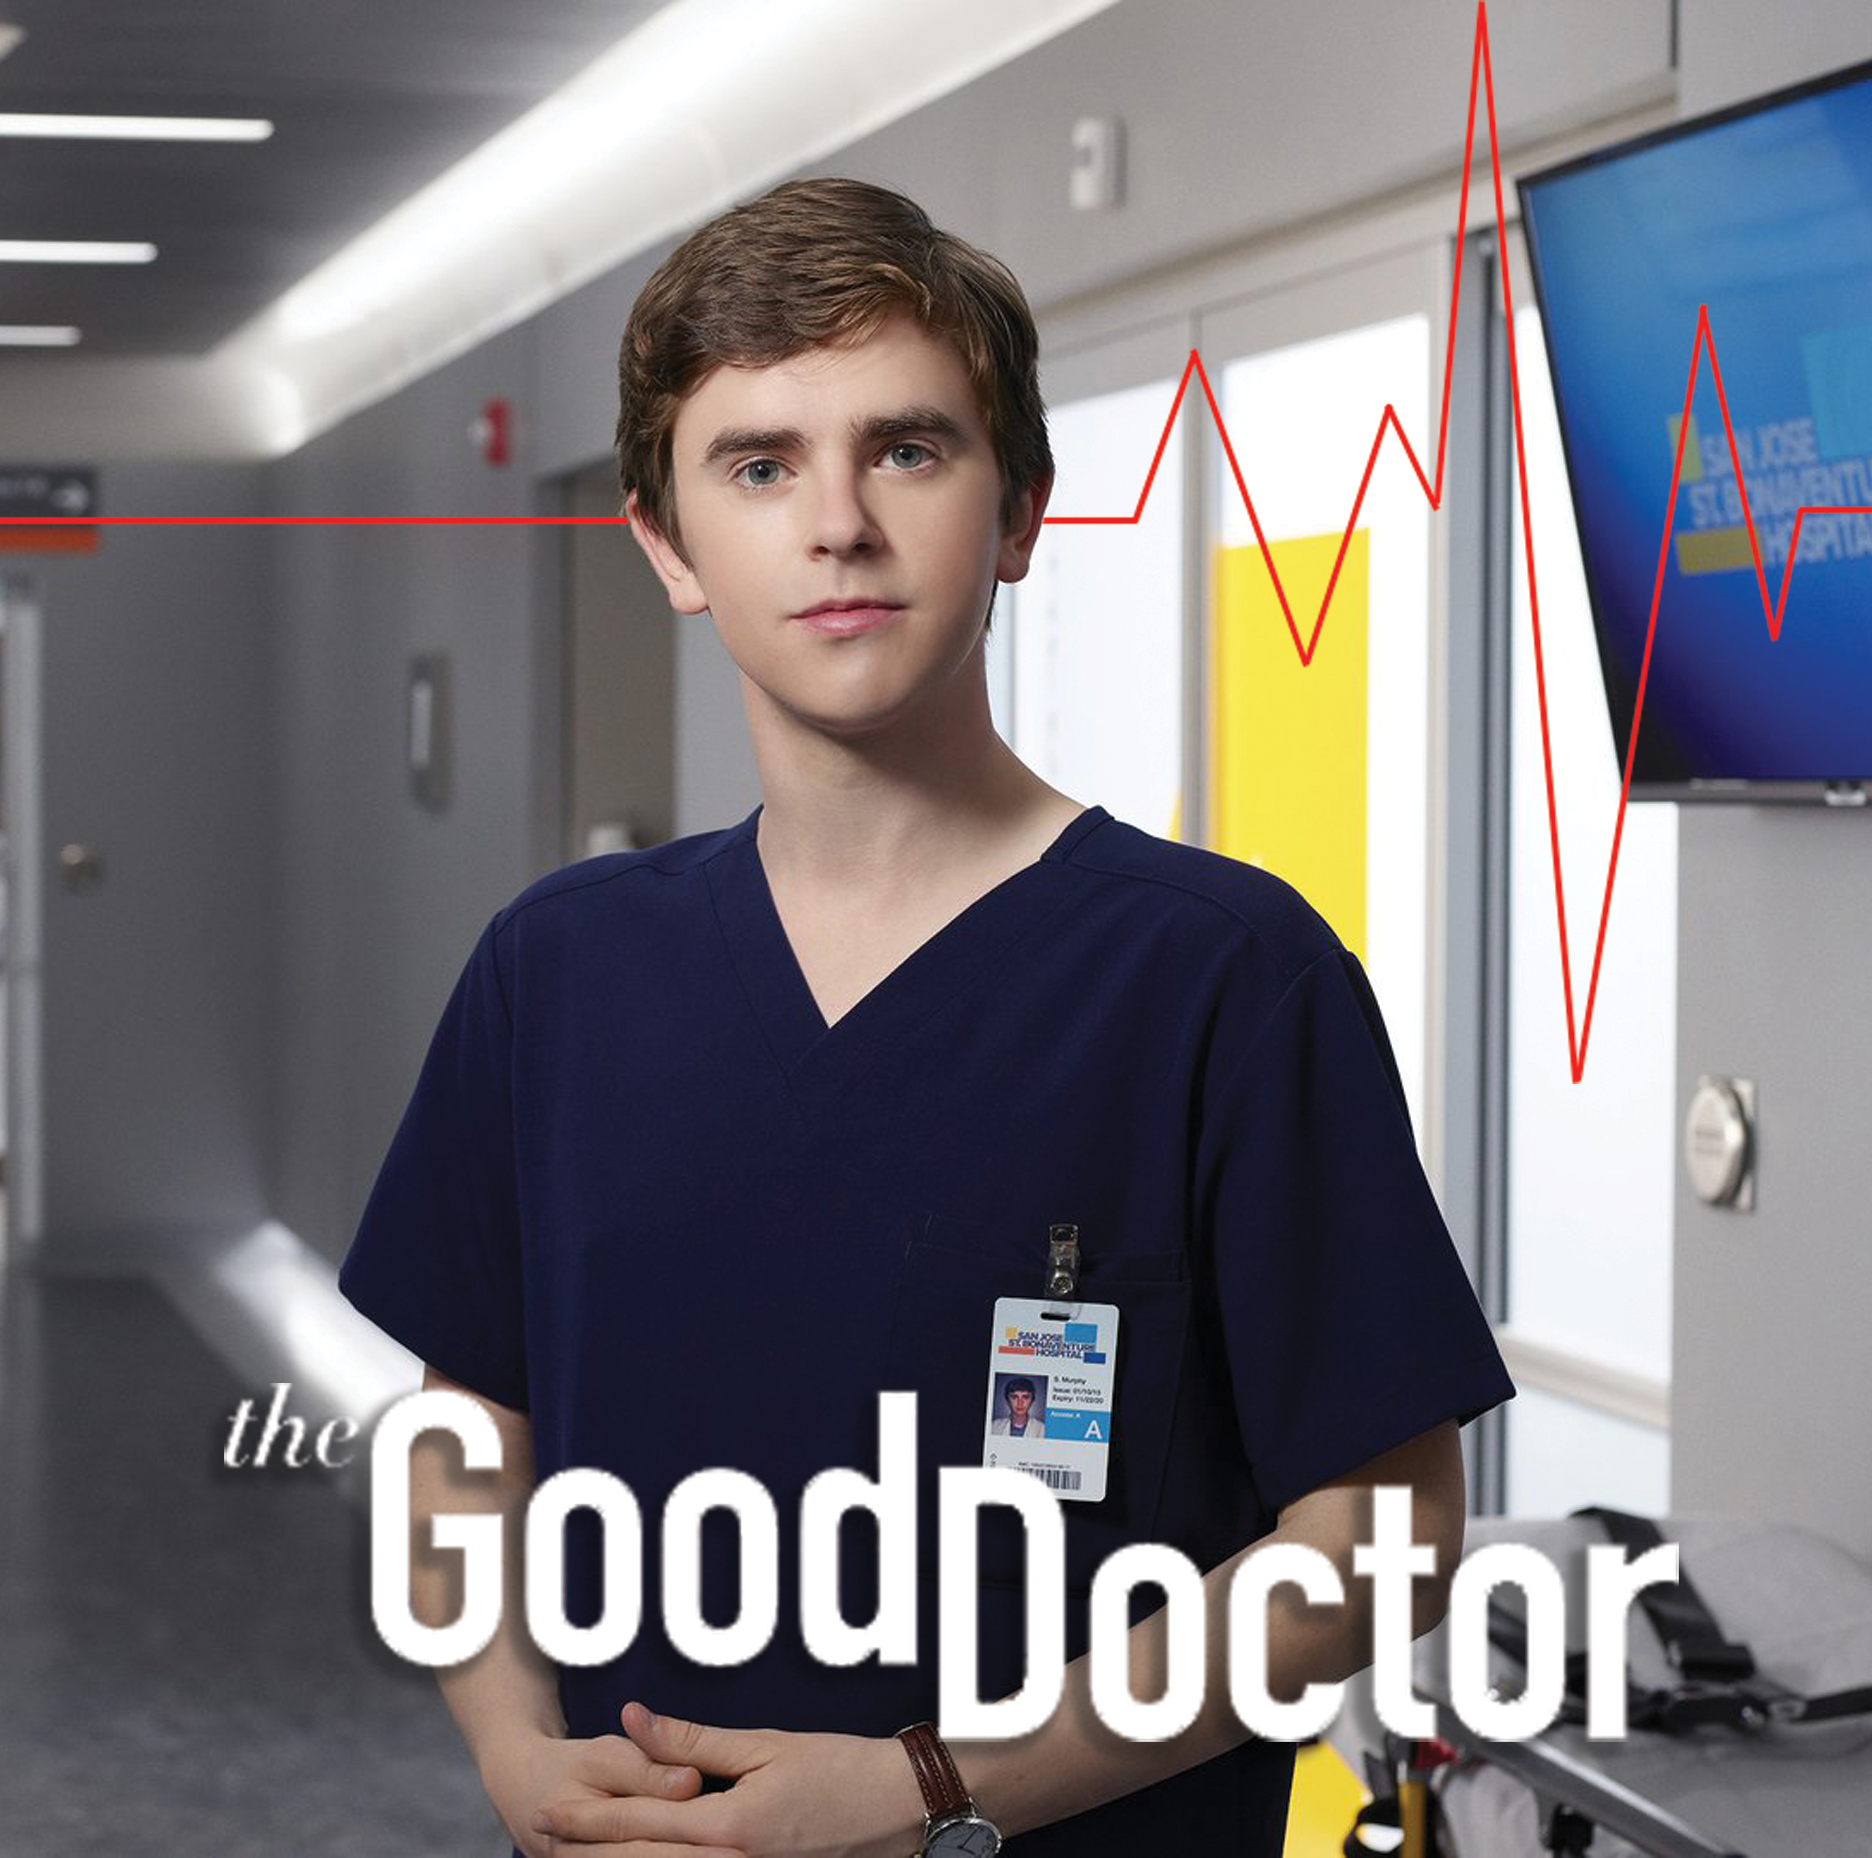 The Good Doctor (Entertainment) Ying Yang